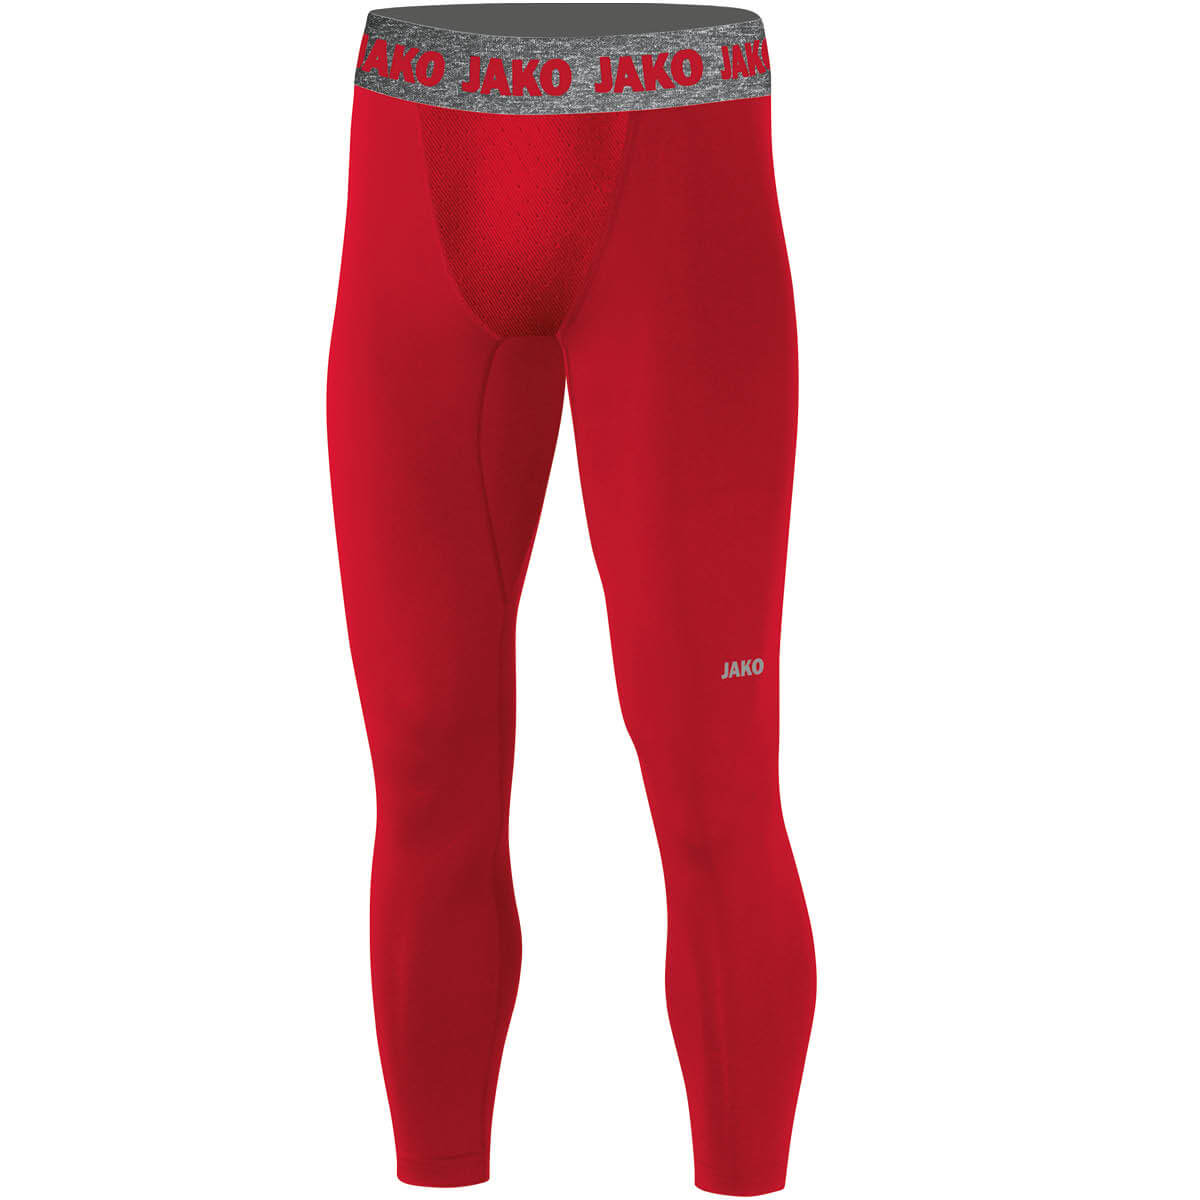 Jako Long Tight Compression 2.0 Kinder 8451  | div. Größen / Farben